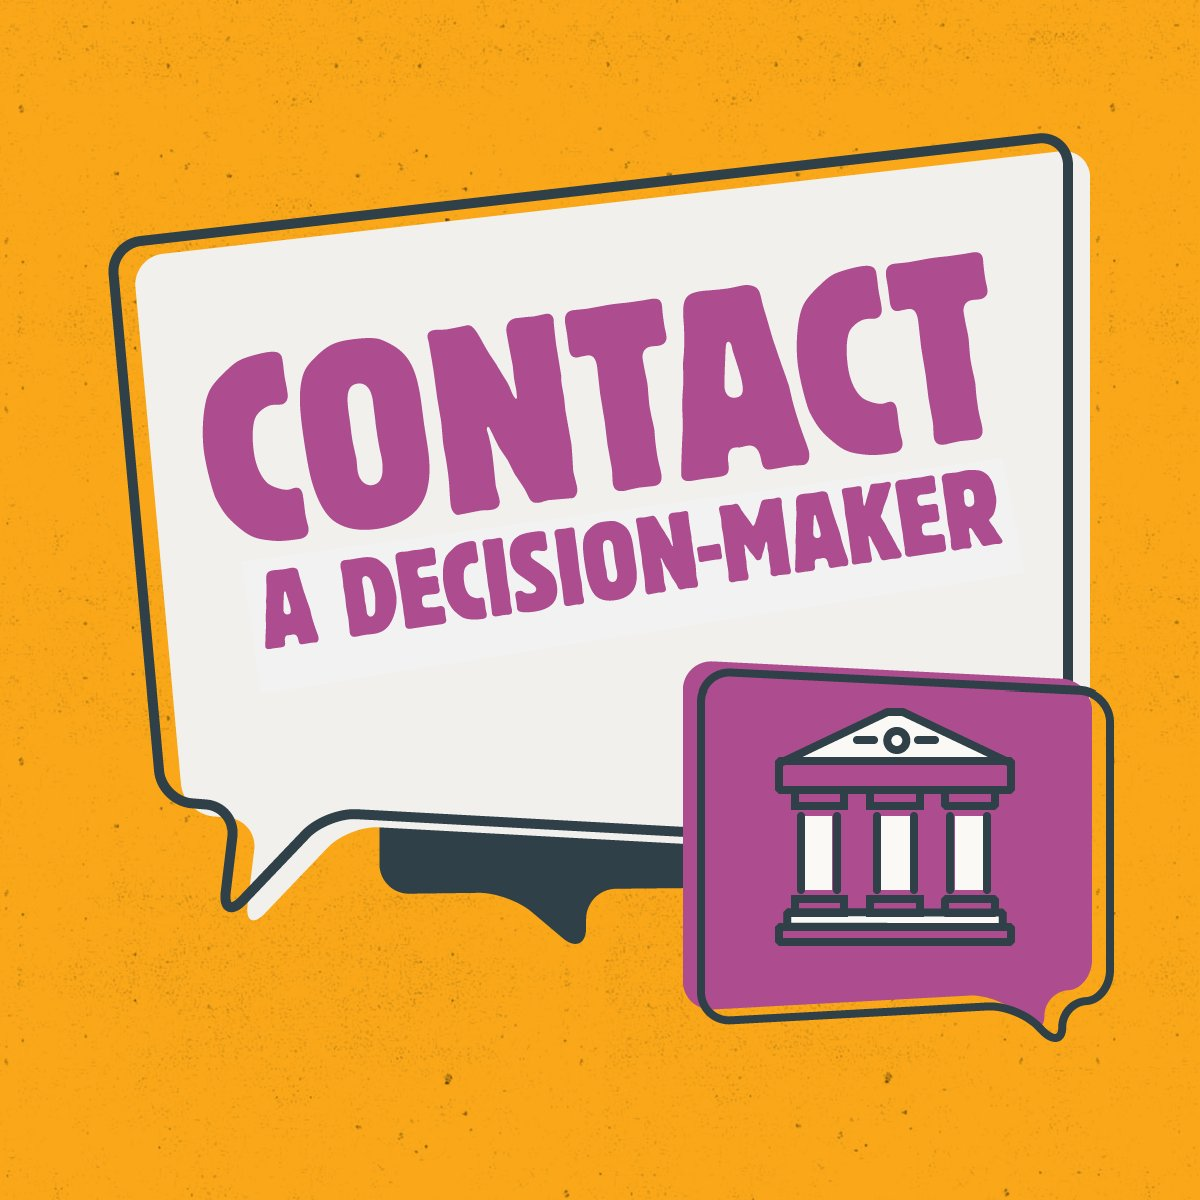 Reach out to your local or national decision-maker to ask what they are doing to address #childmarriage in your area. ✍📢  And take action here @MTBA_Child_Marr 👇   #16days2020 #areyoulistening